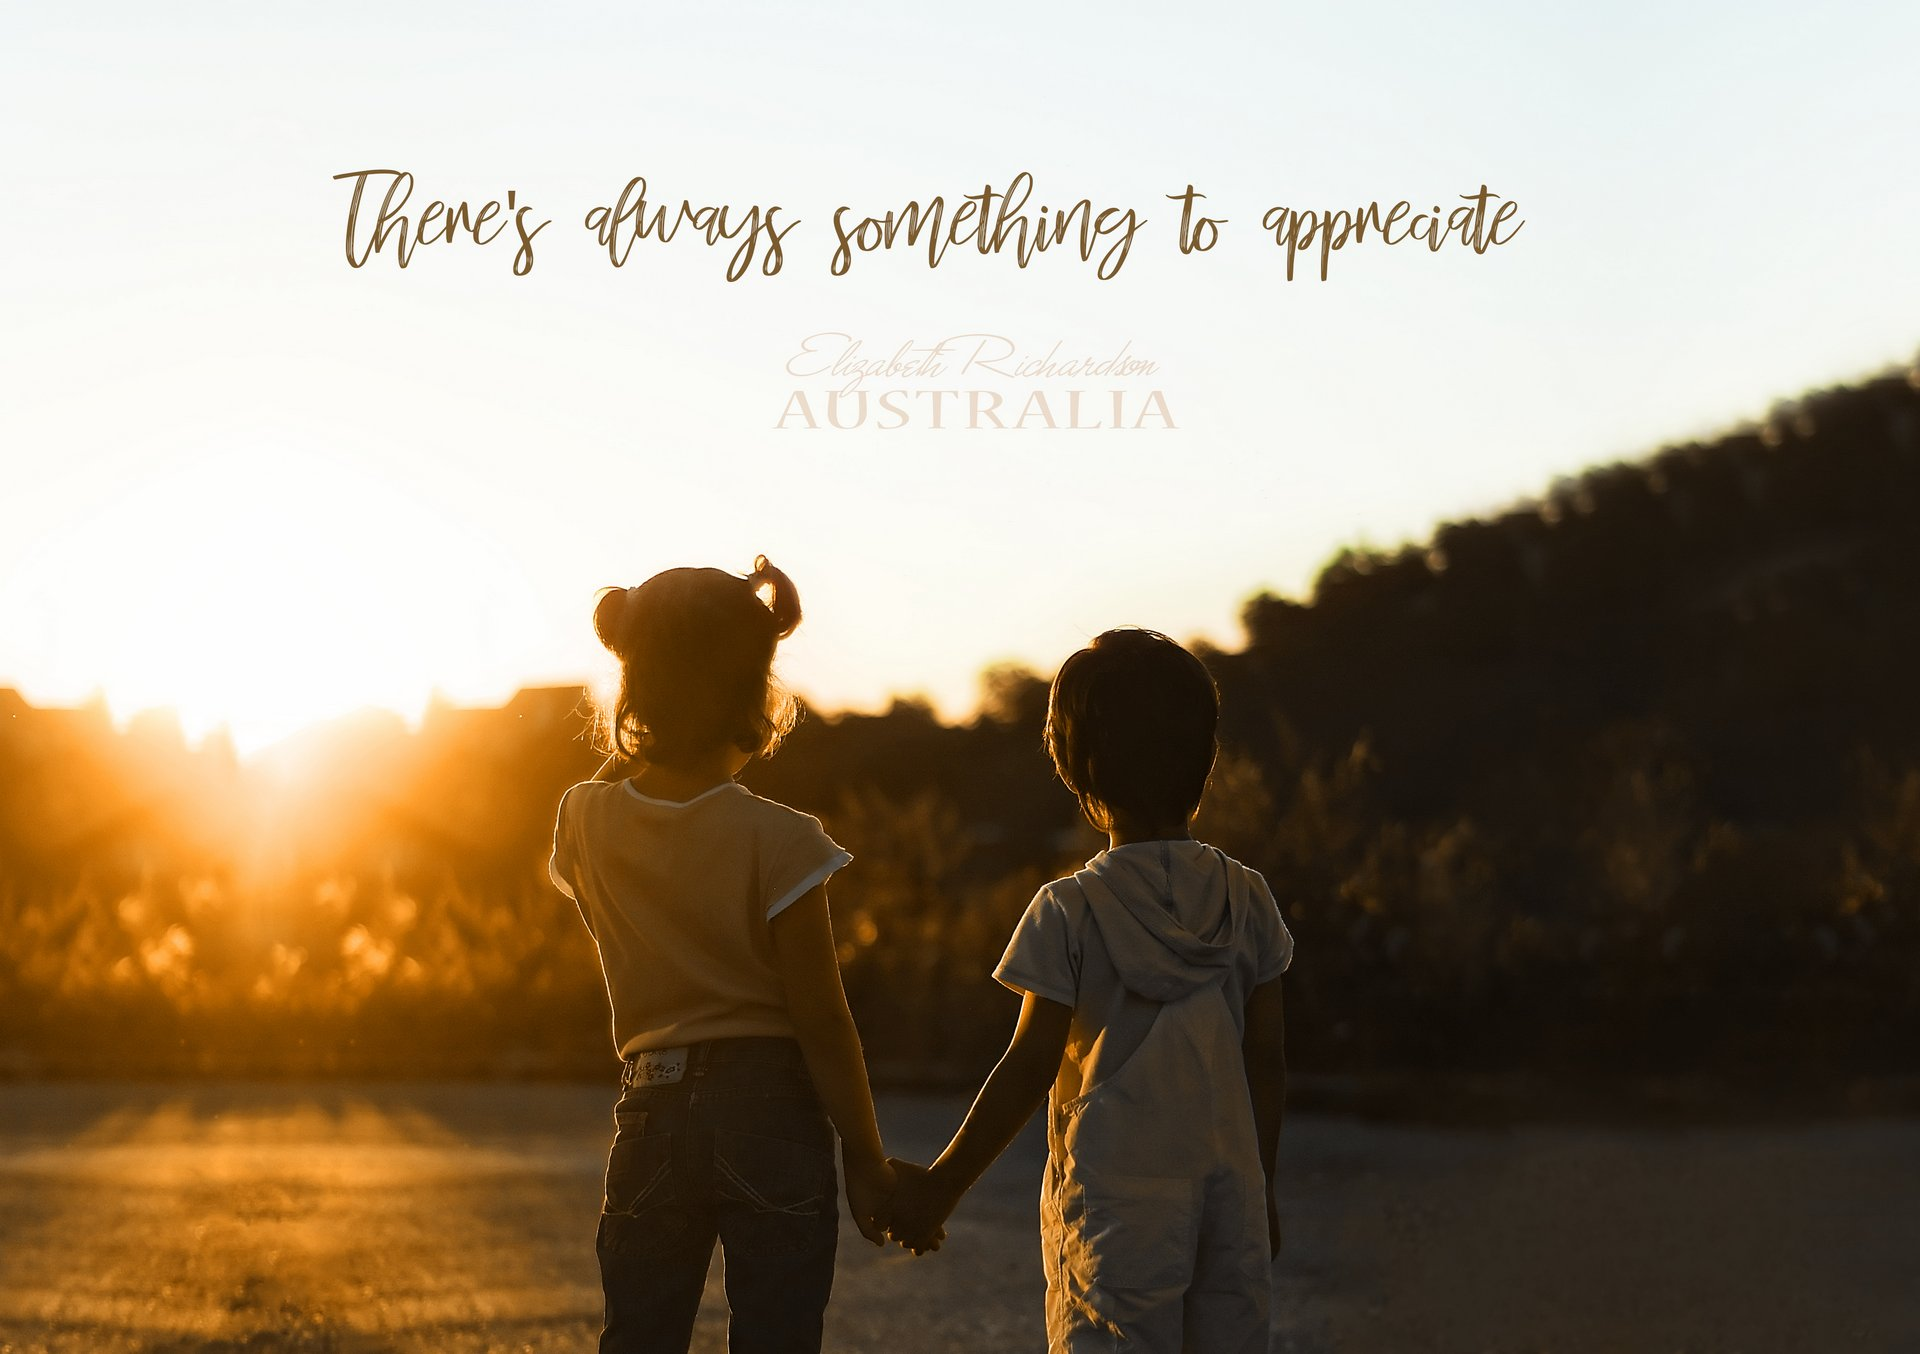 There is always something to appreciate POSTER